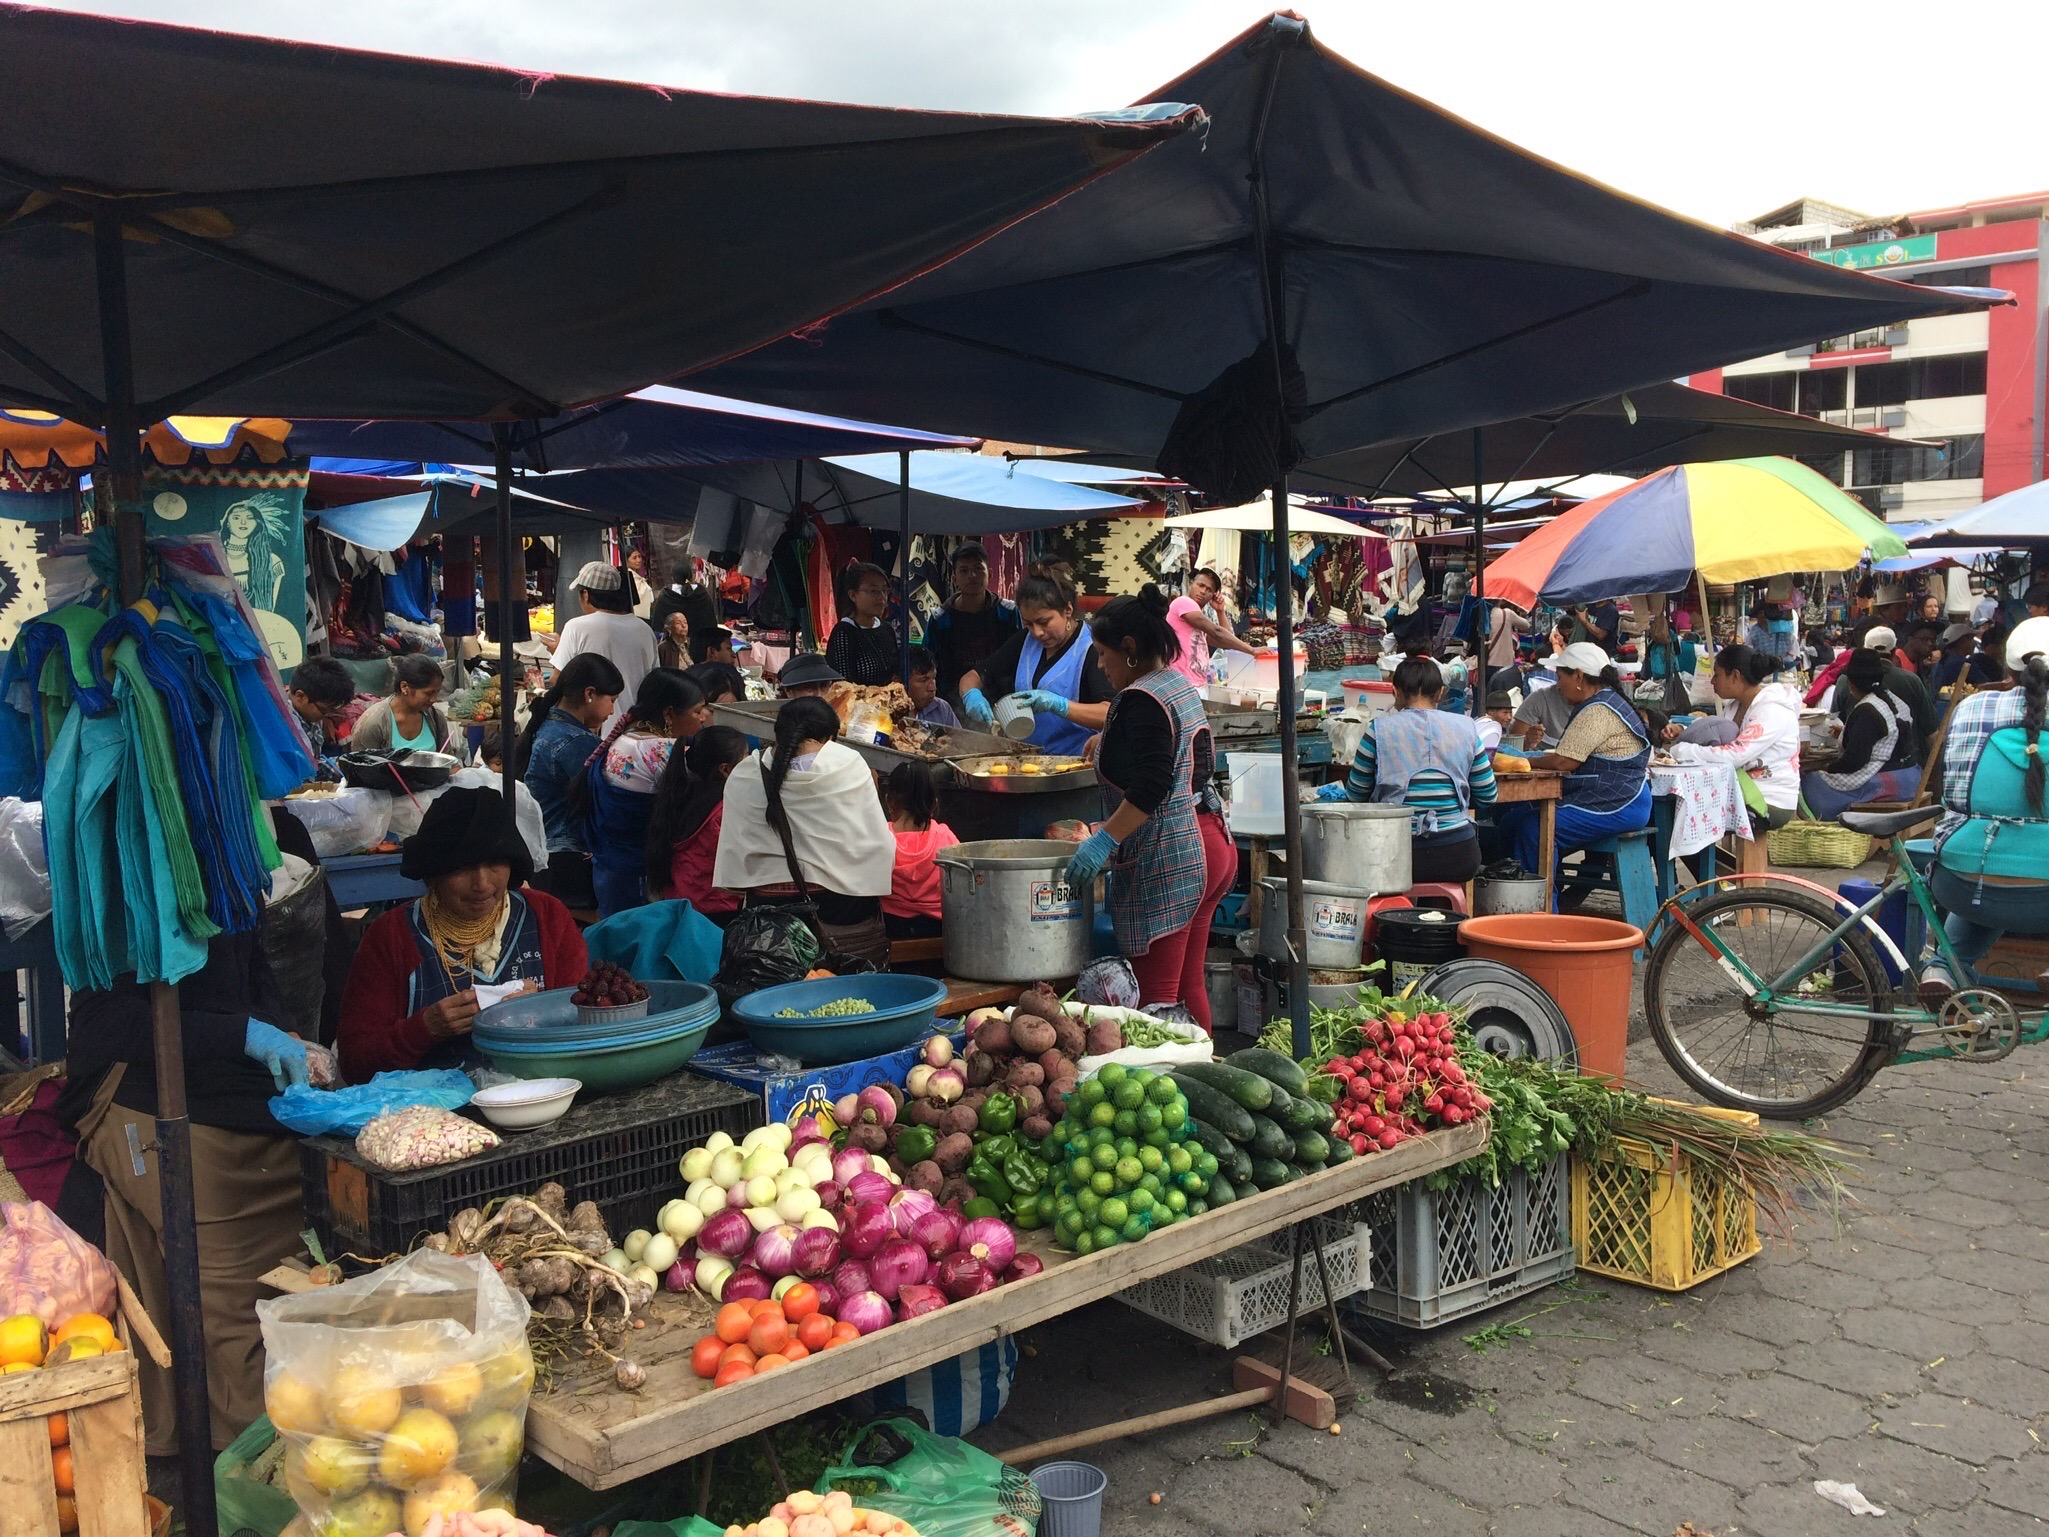 Local colorful market